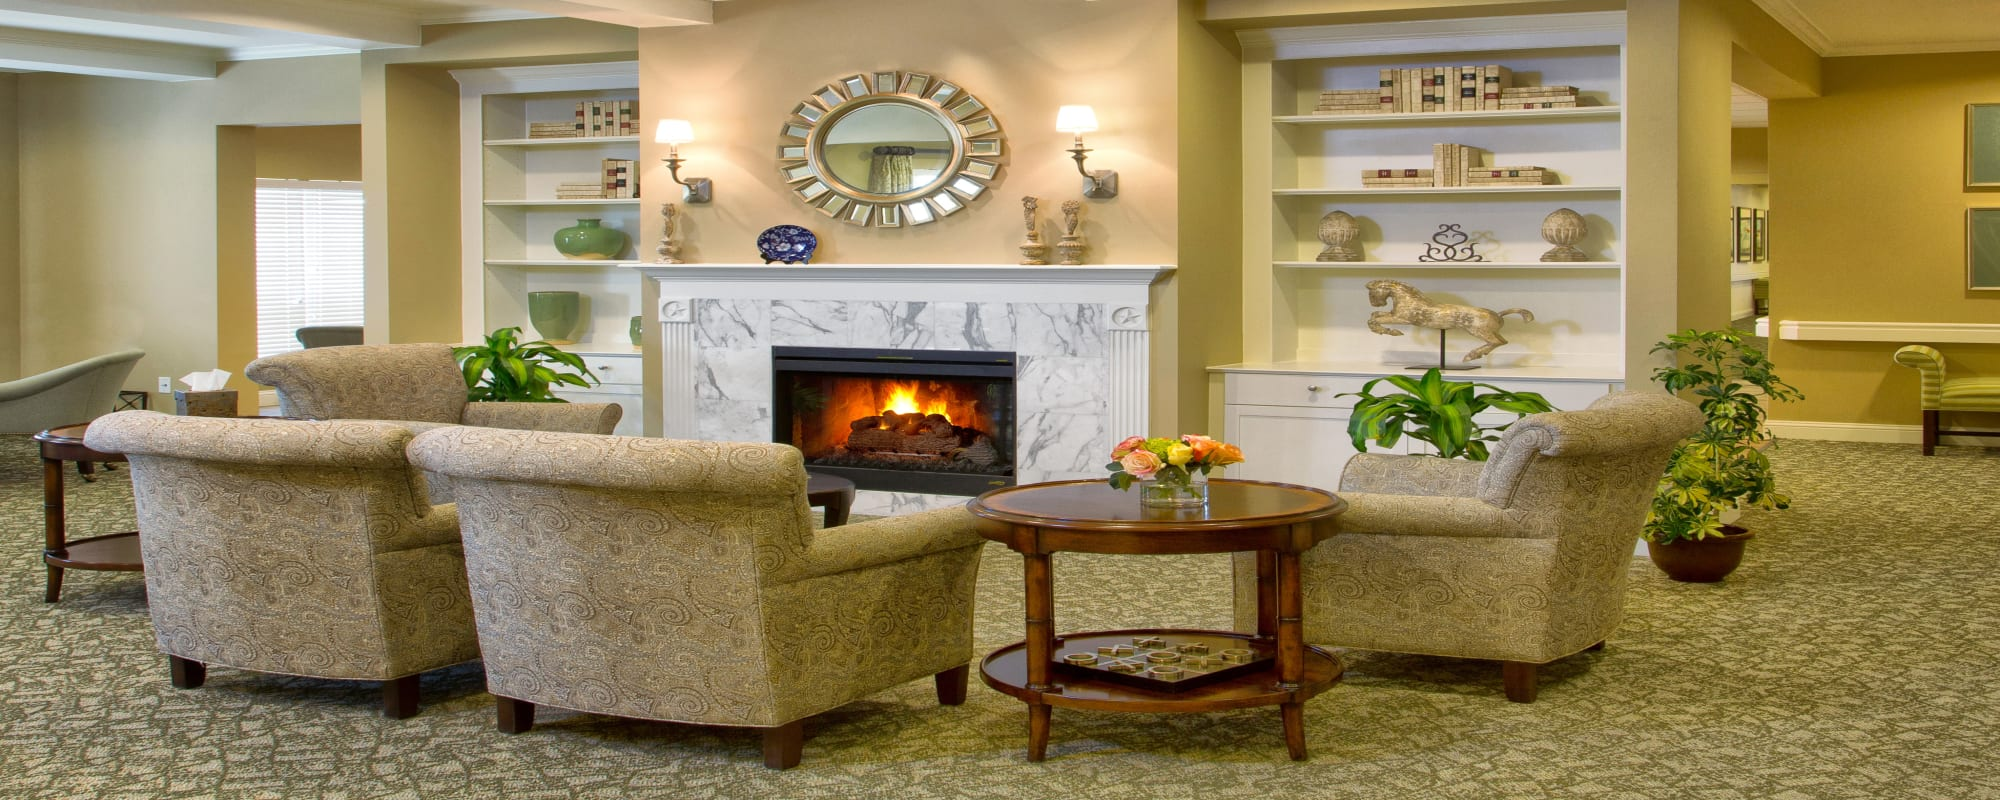 Autumn Grove Cottage at The Woodlands fireplace seating